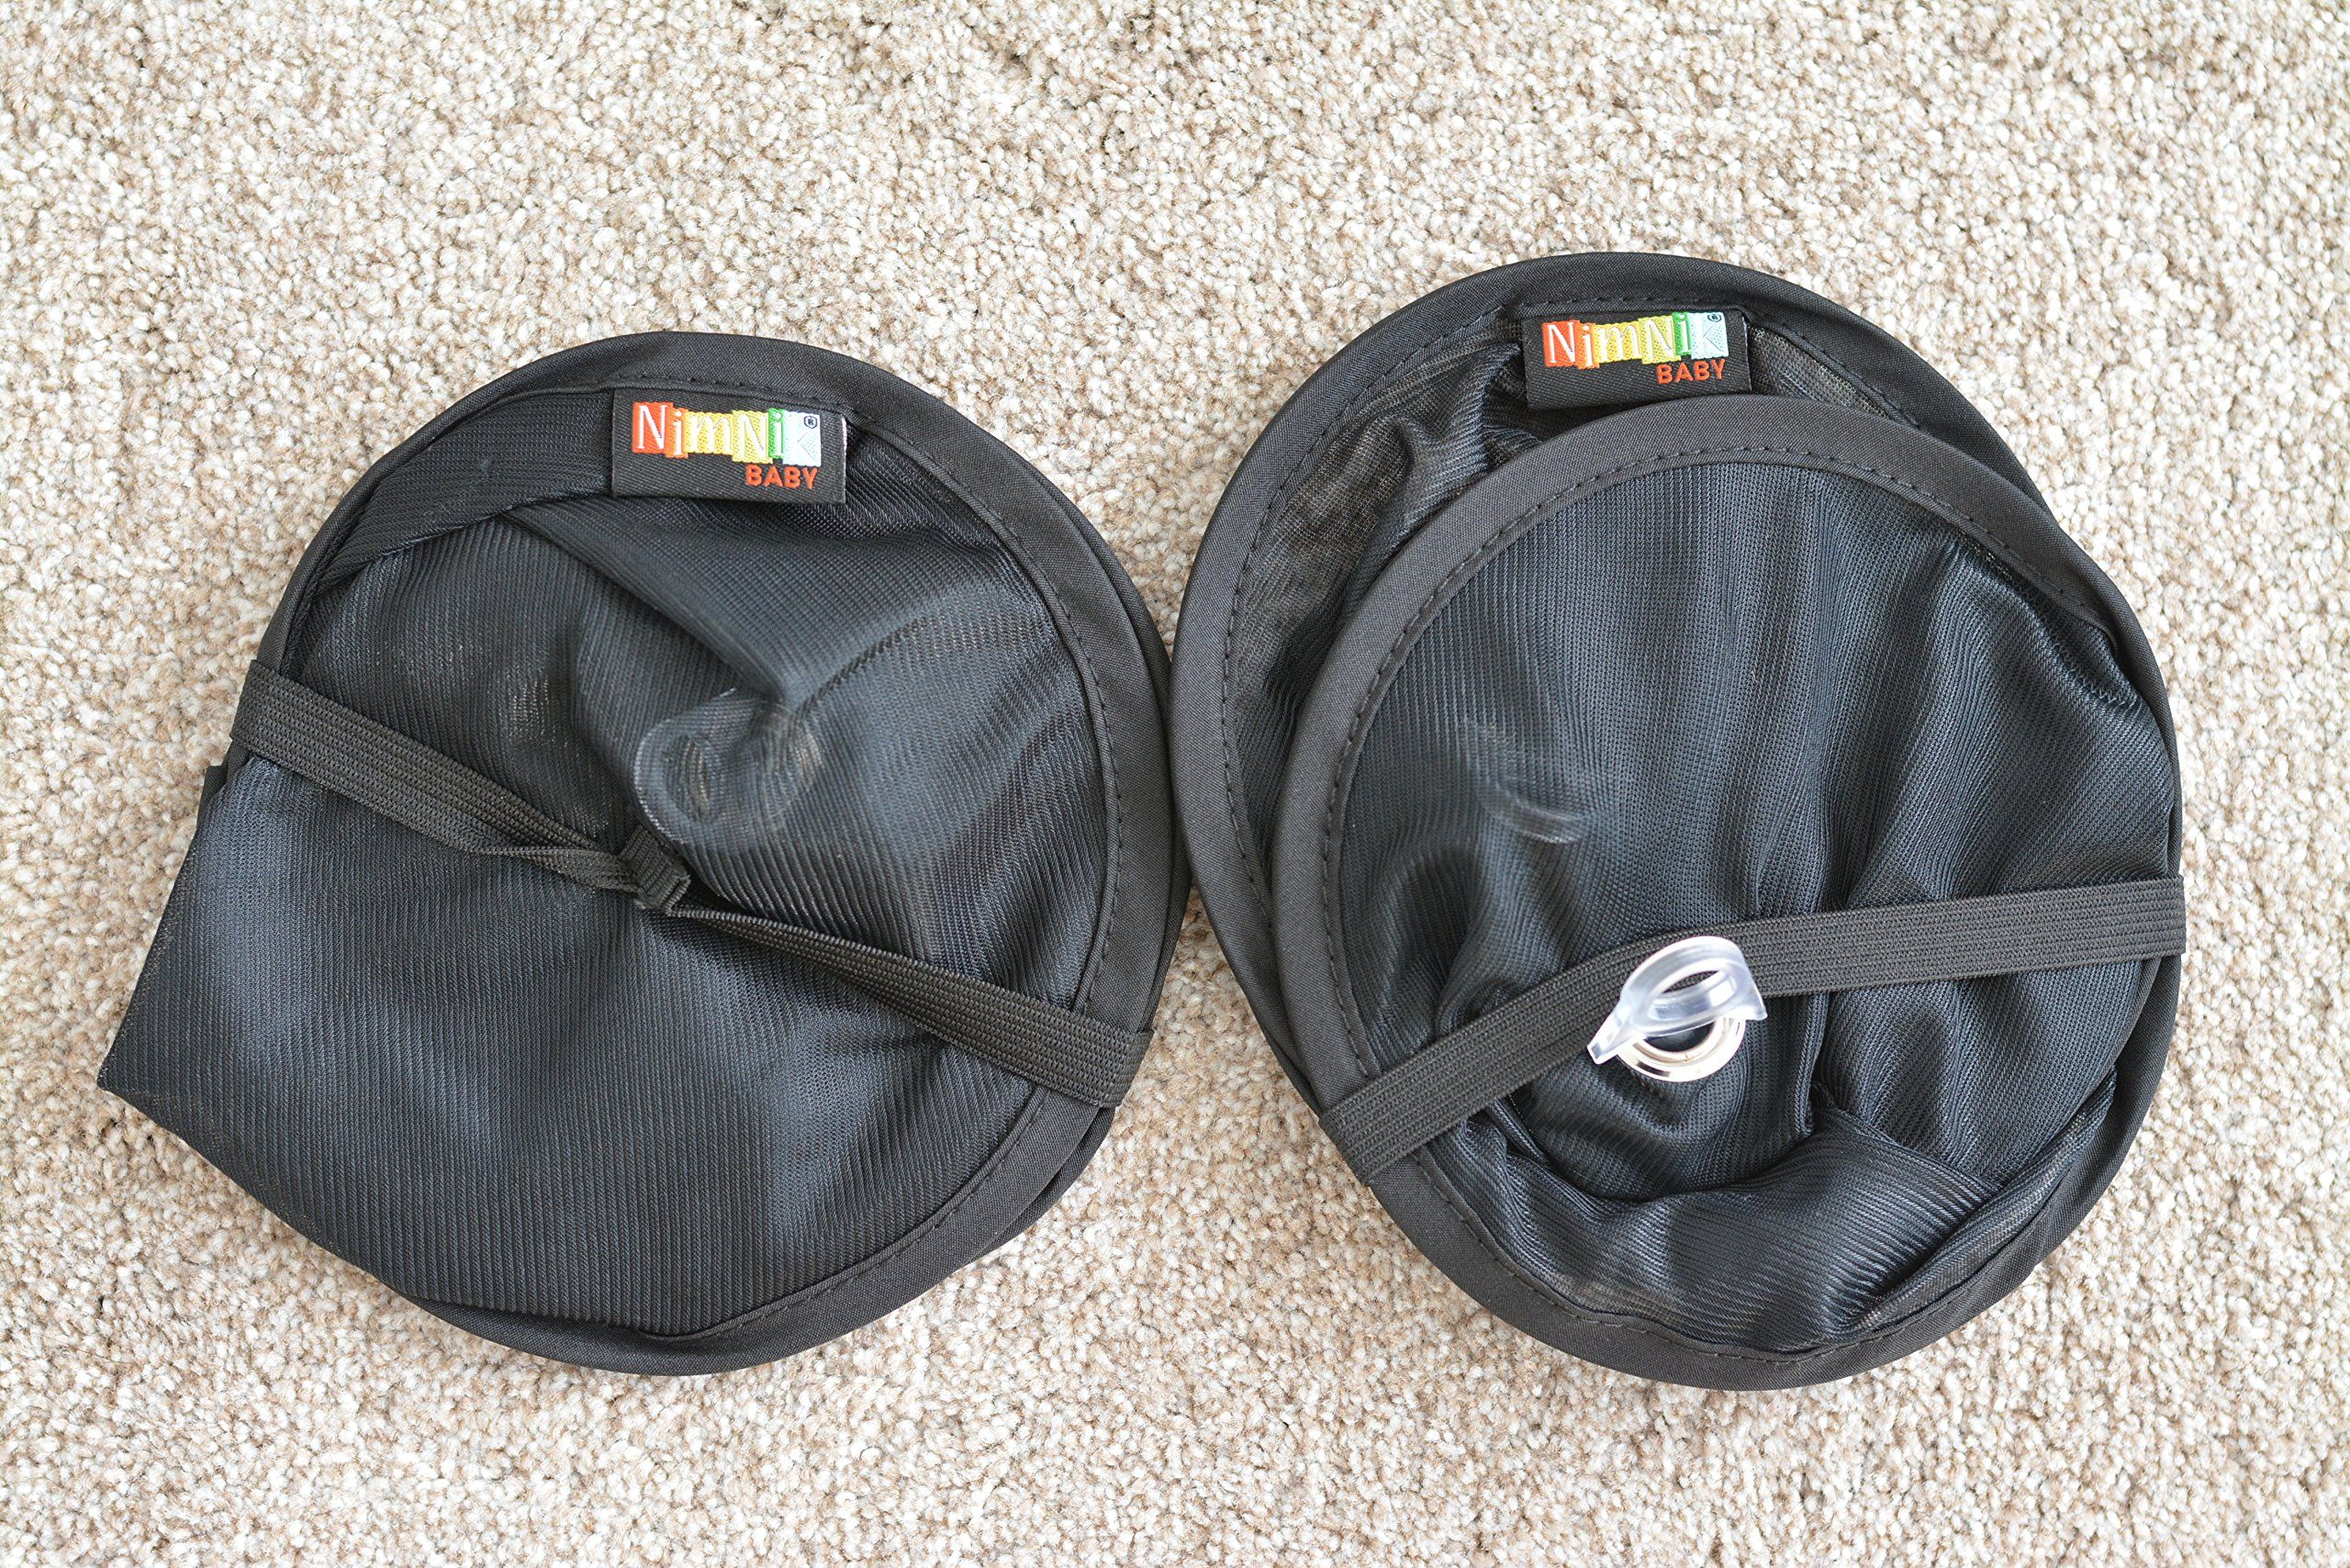 Car sun shade for baby 2pack black window shades want